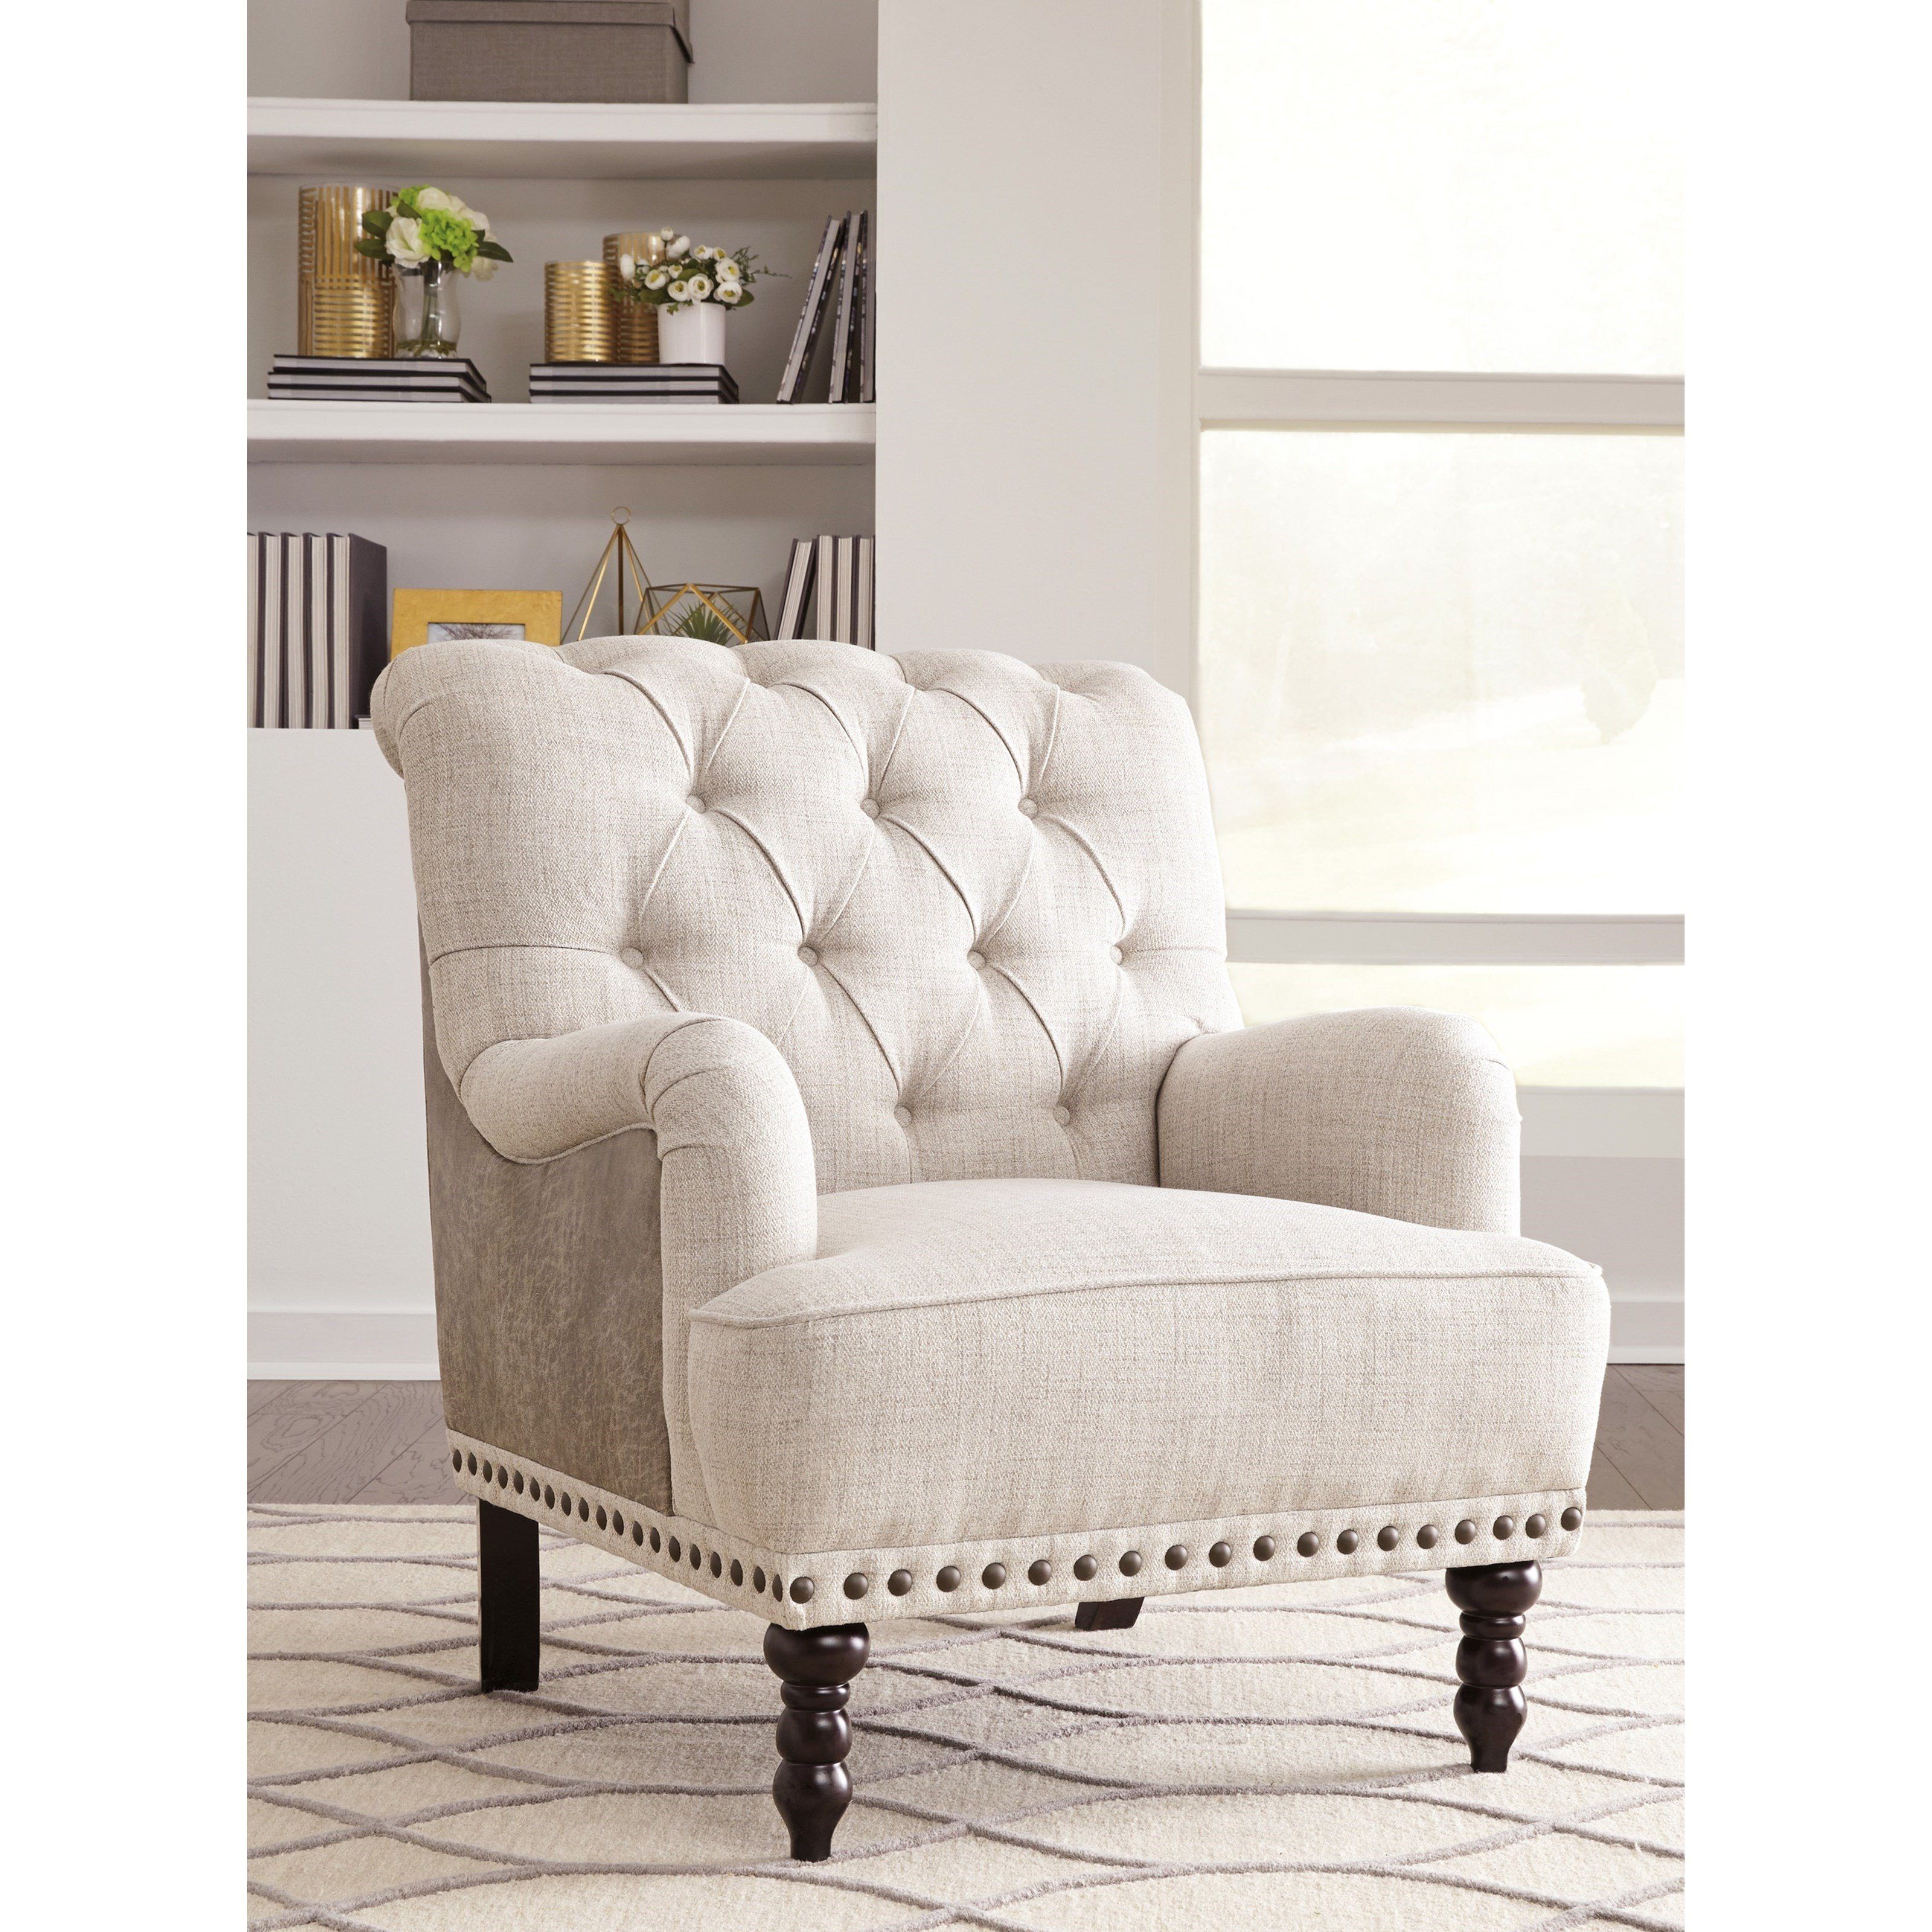 Traditional Living Room Upholstered Chairs Styleline Tartonelle A Traditional Accent Chair